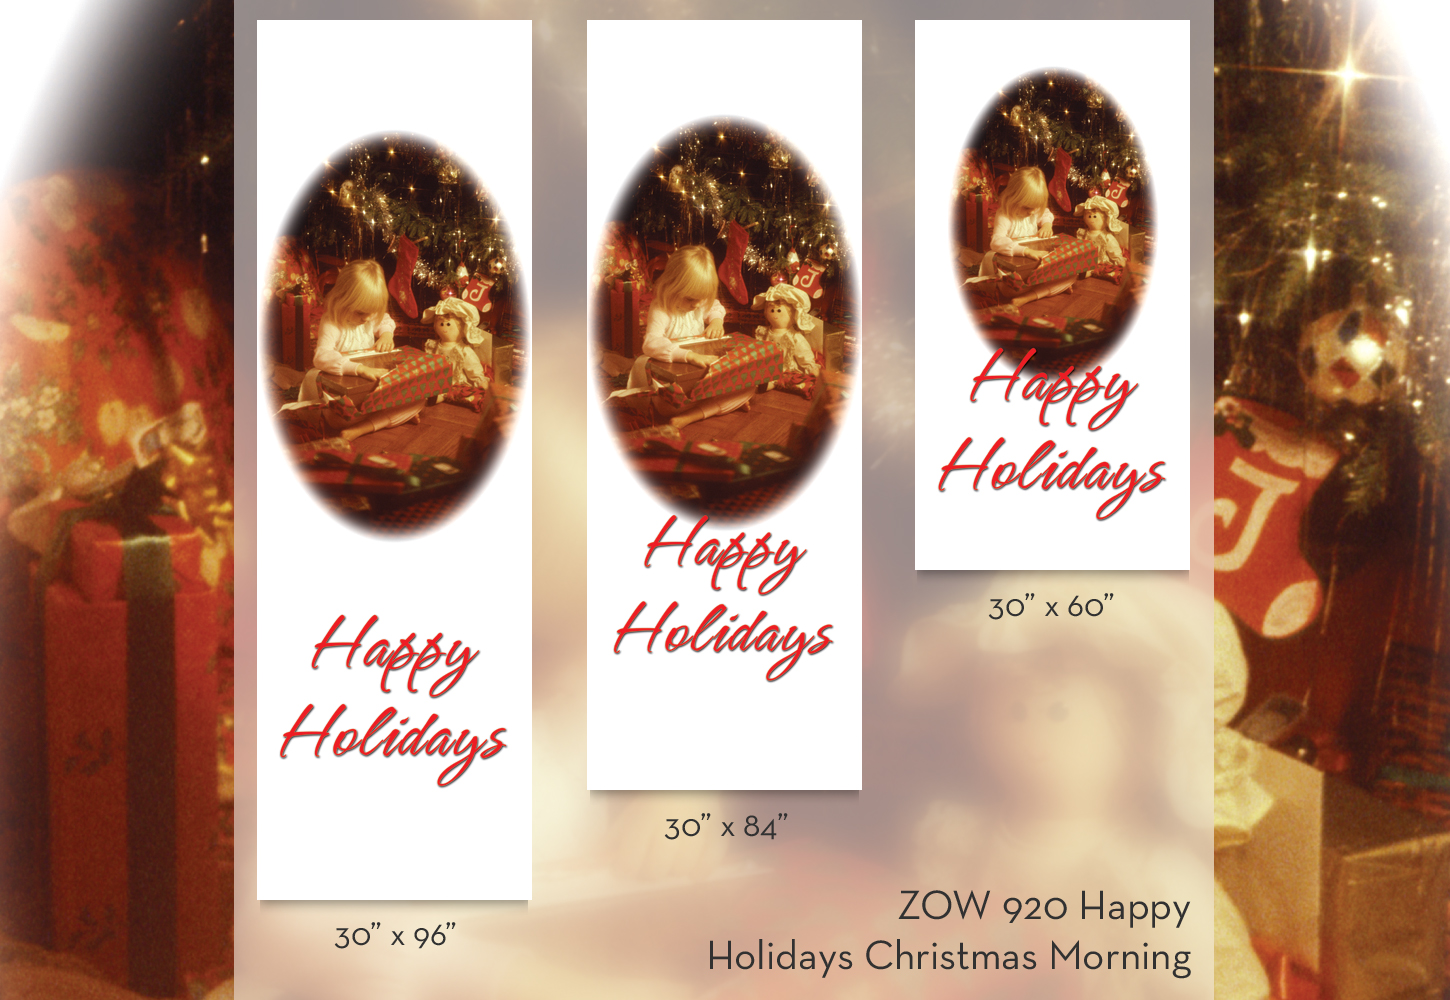 ZOW 920 Happy Holidays Christmas Morning